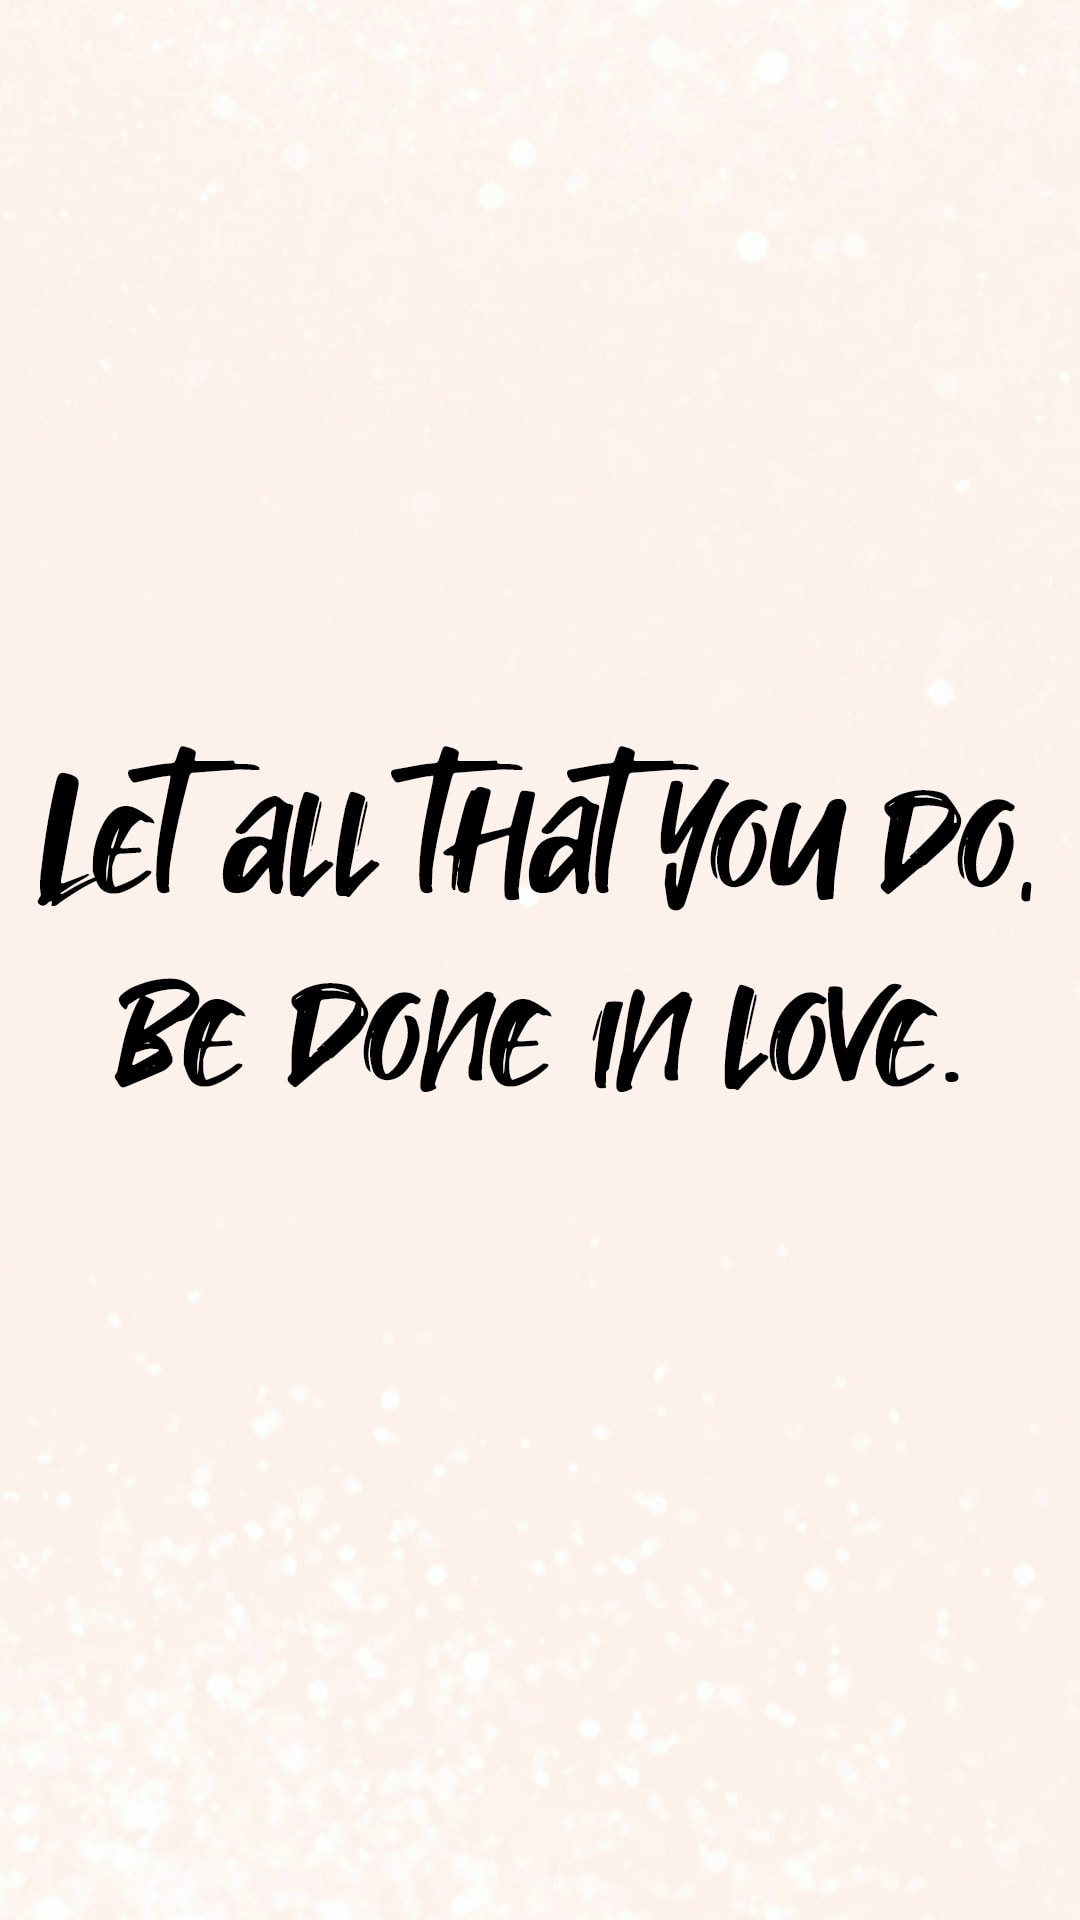 Let all that you do be done with love.